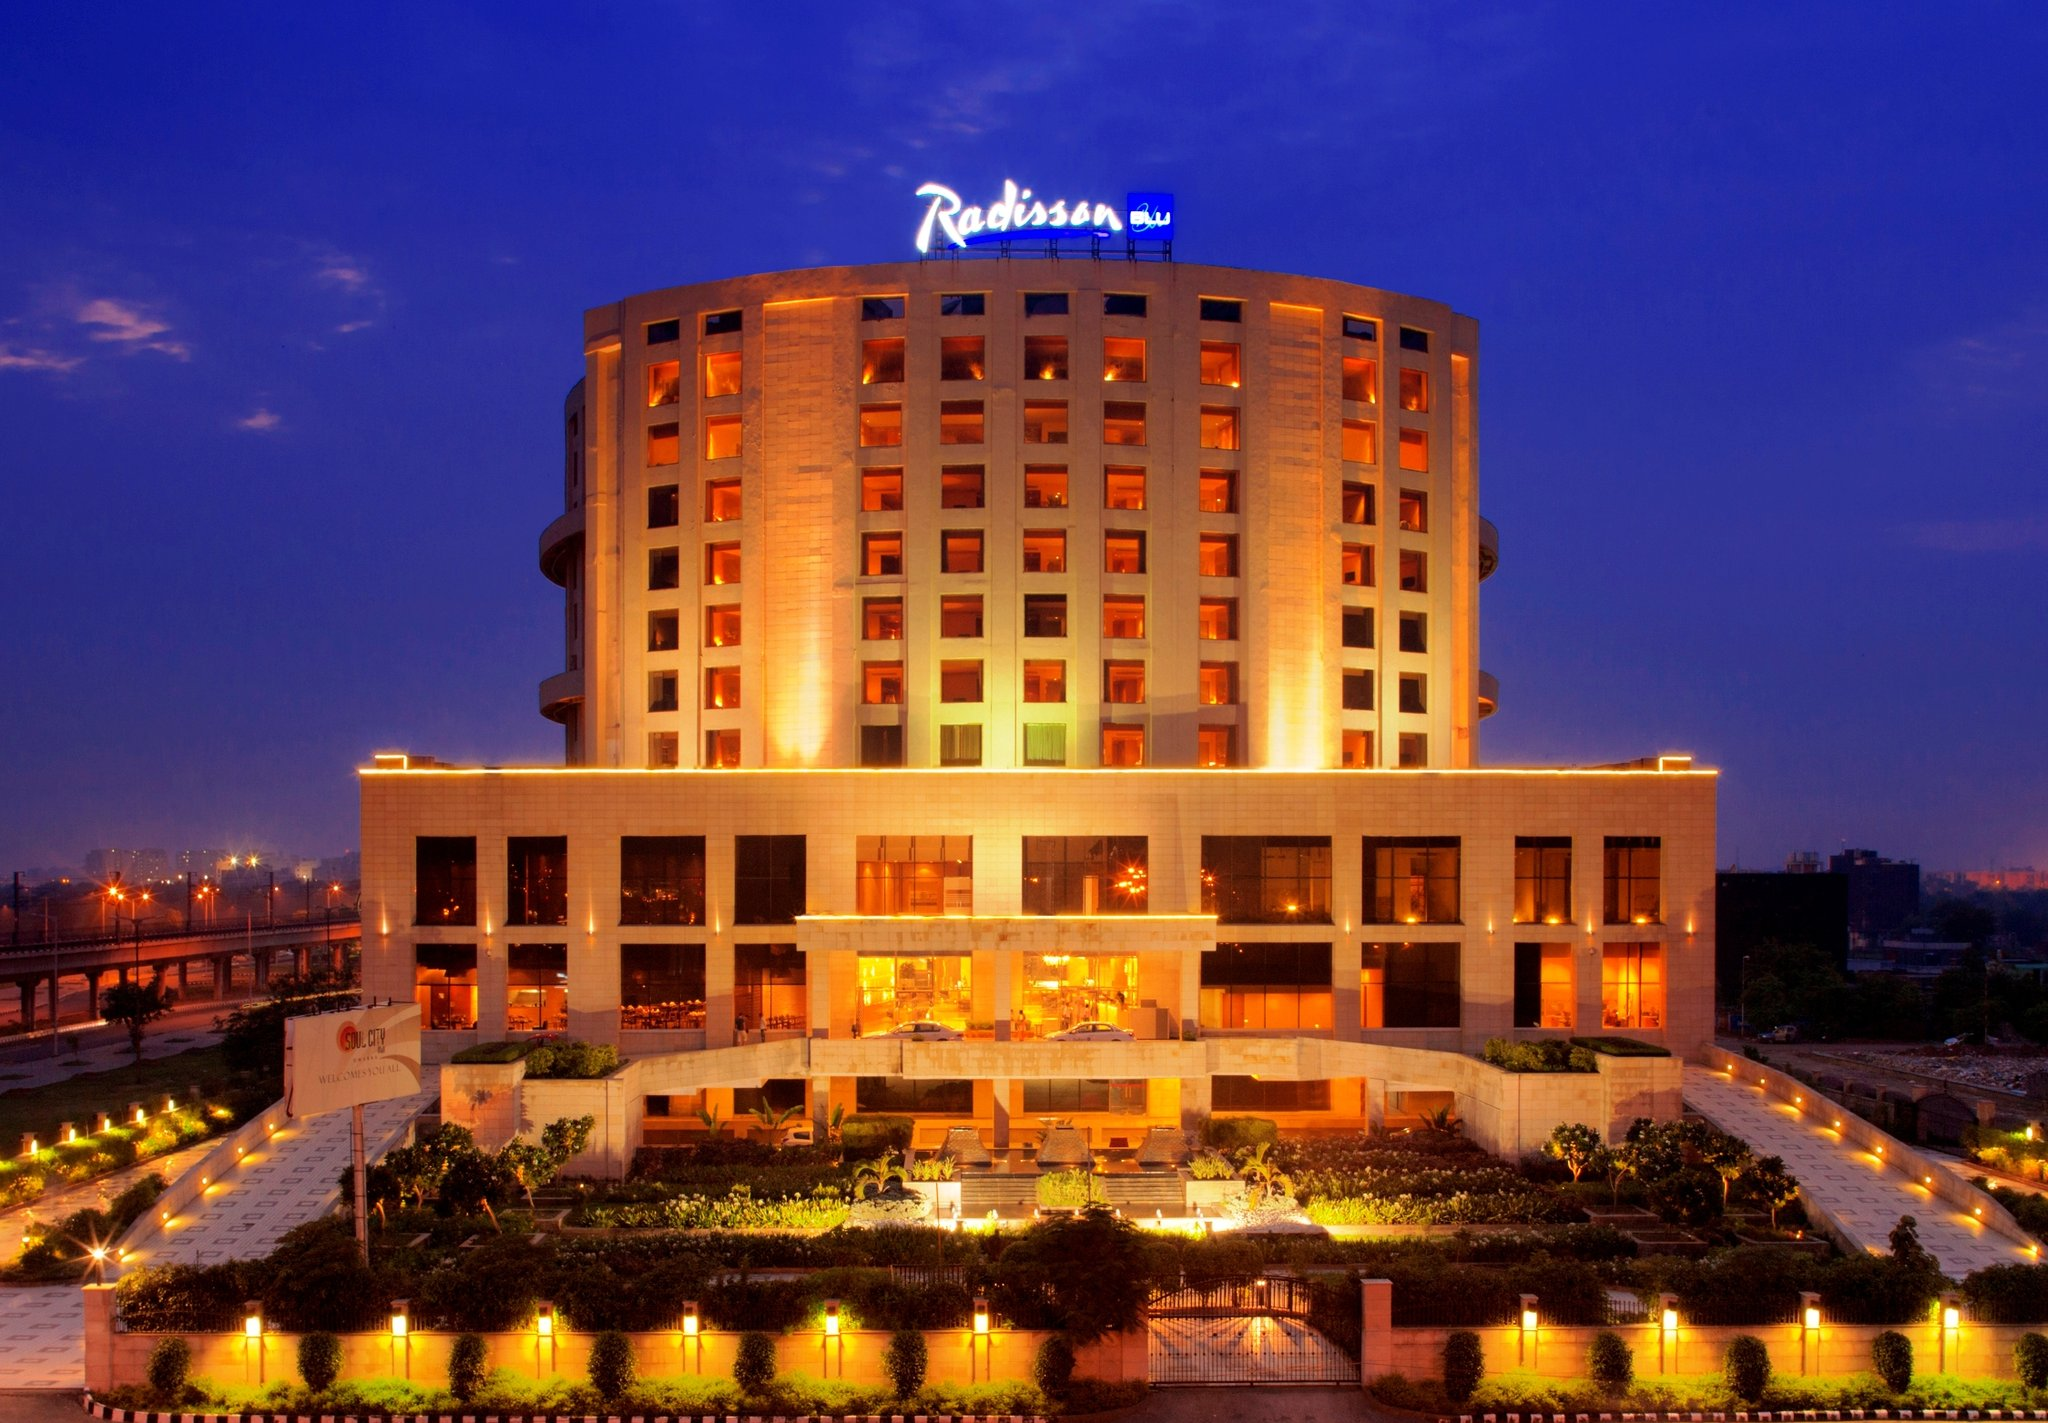 Hotels in new delhi archives india hotels travel blog for Top design hotels india